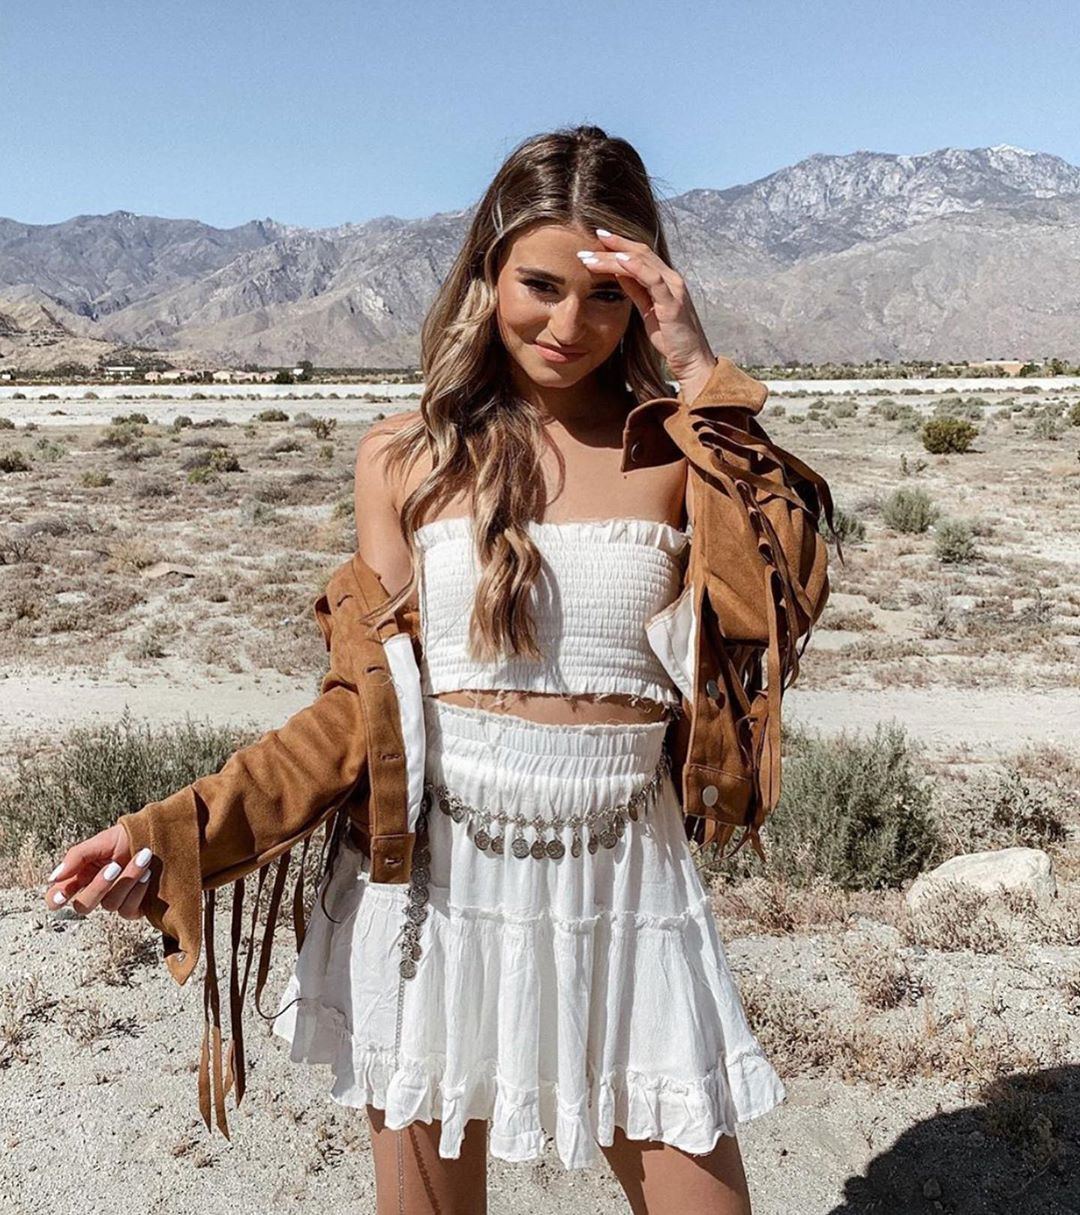 Cute festival outfits that have boho flair